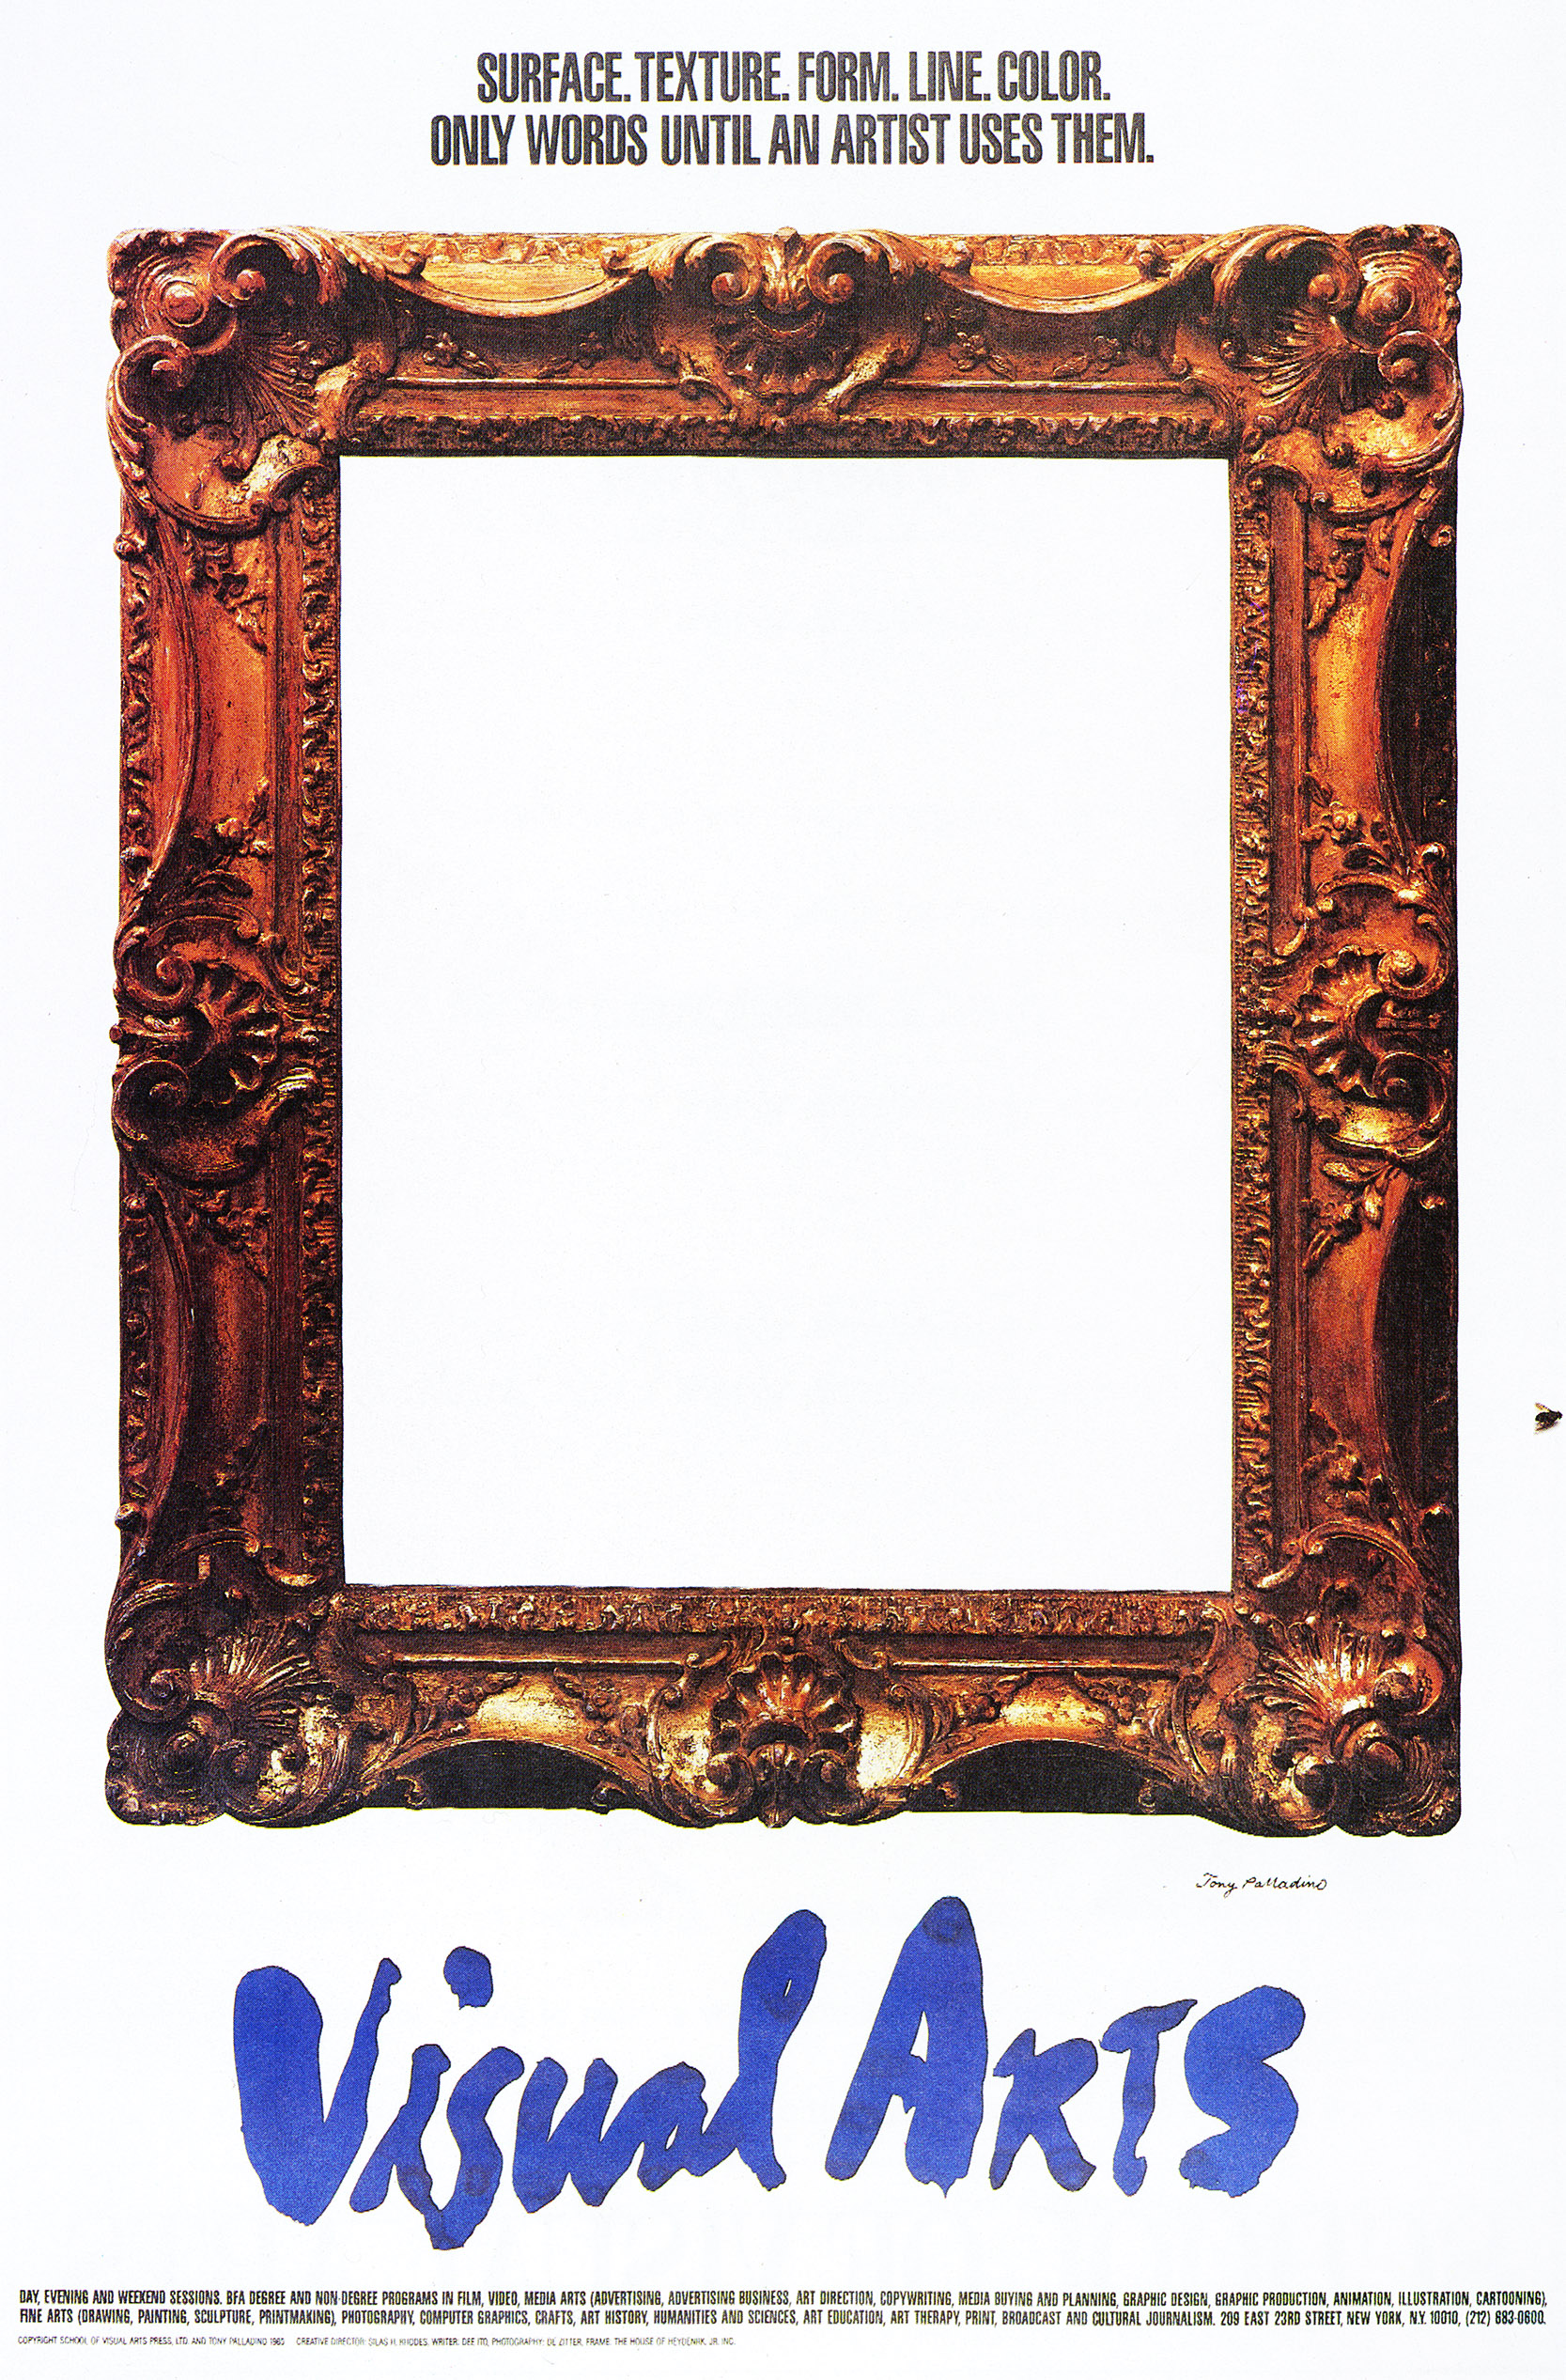 Photograph of an empty, ornate gold picture frame against a white background. Text is in blue brushwork.